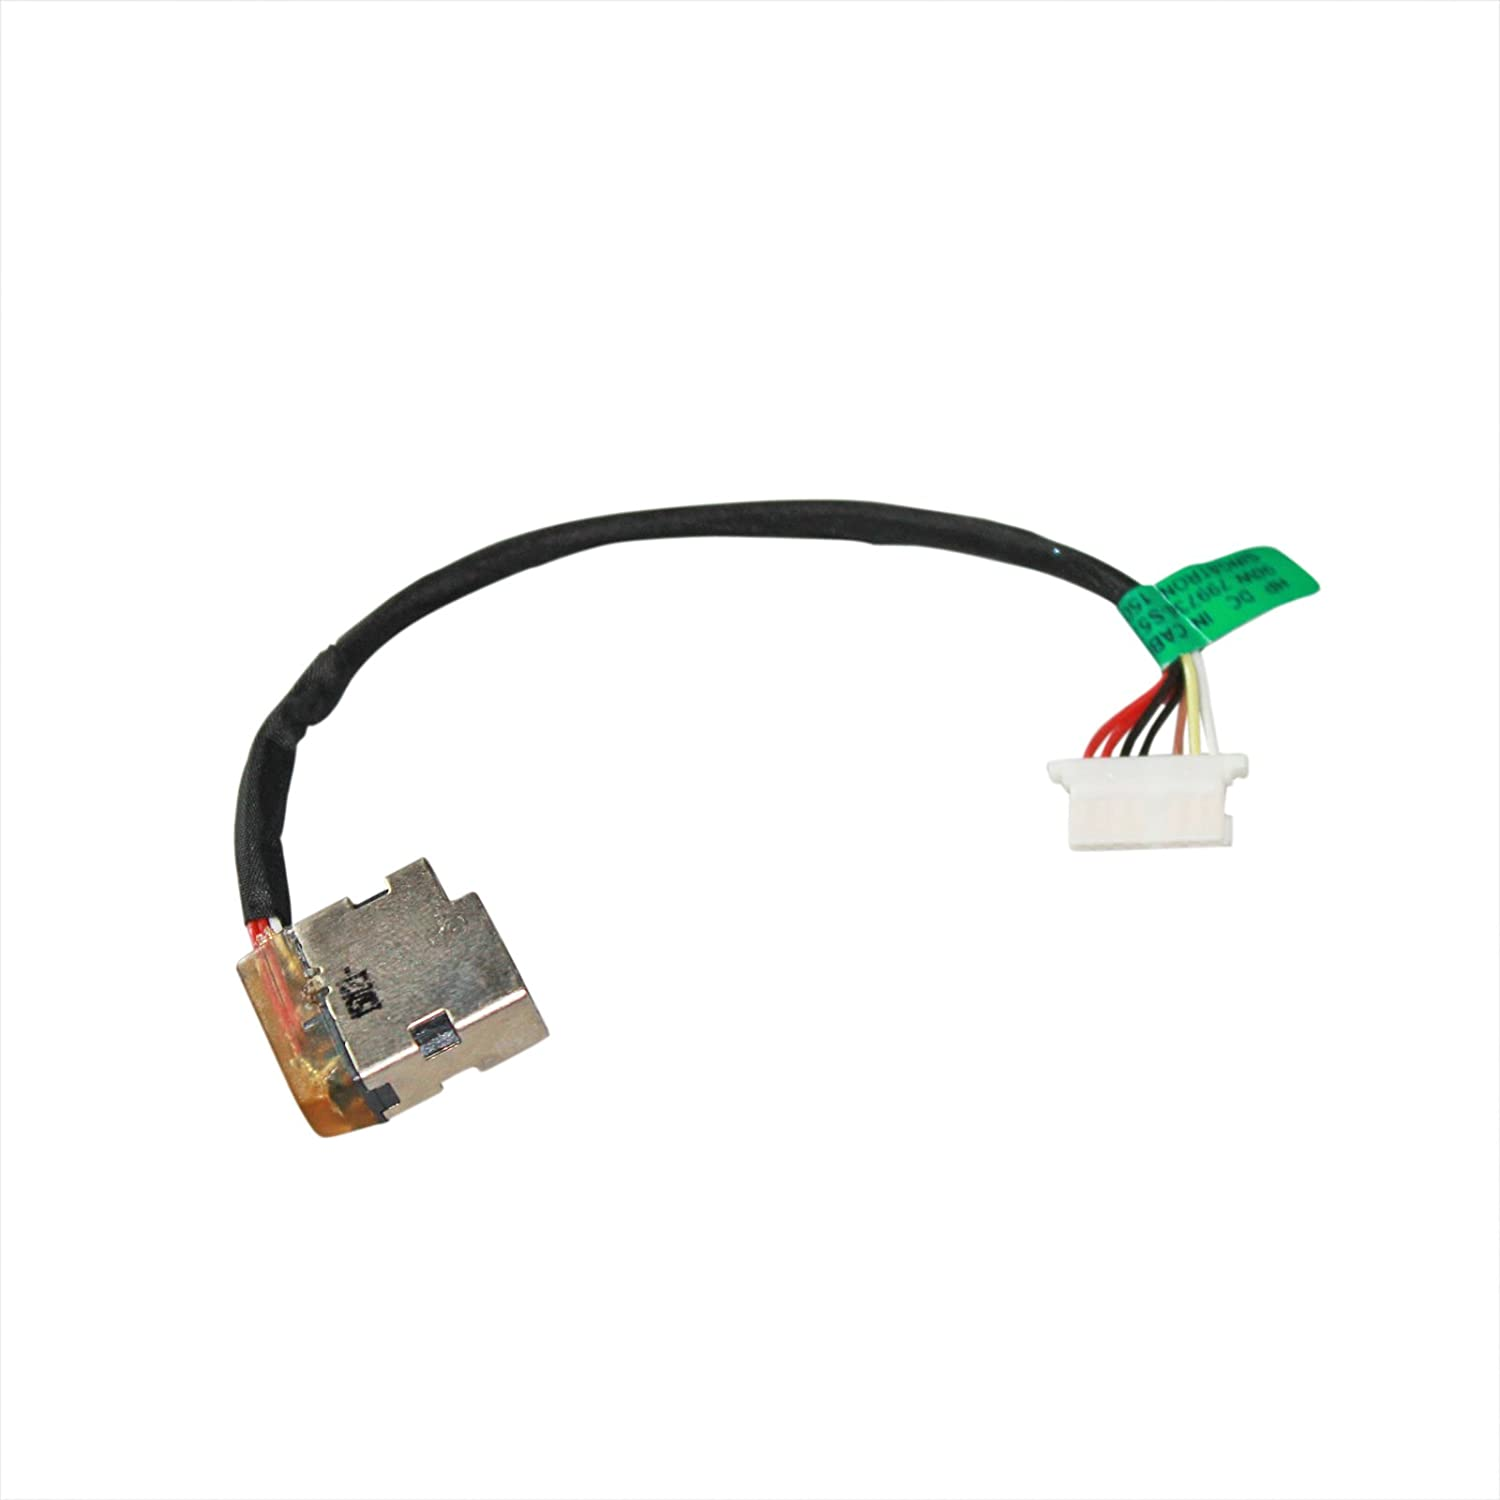 GinTai DC Power Jack in Cable Harness Replacement for HP Pavilion 15-AF131DX 799736-T57